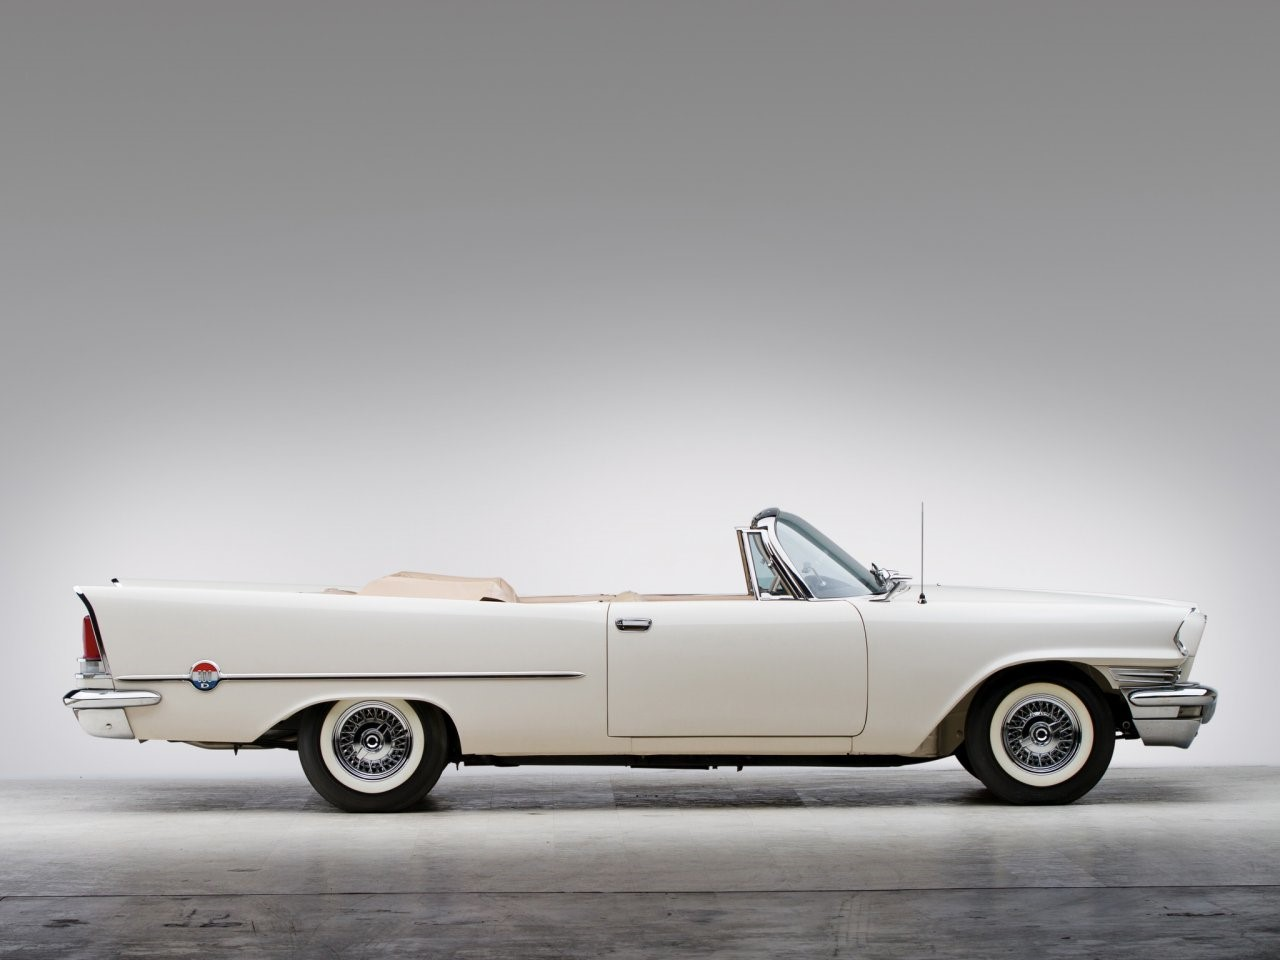 1958 chrysler 300 convertible coup 2. Cars Review. Best American Auto & Cars Review